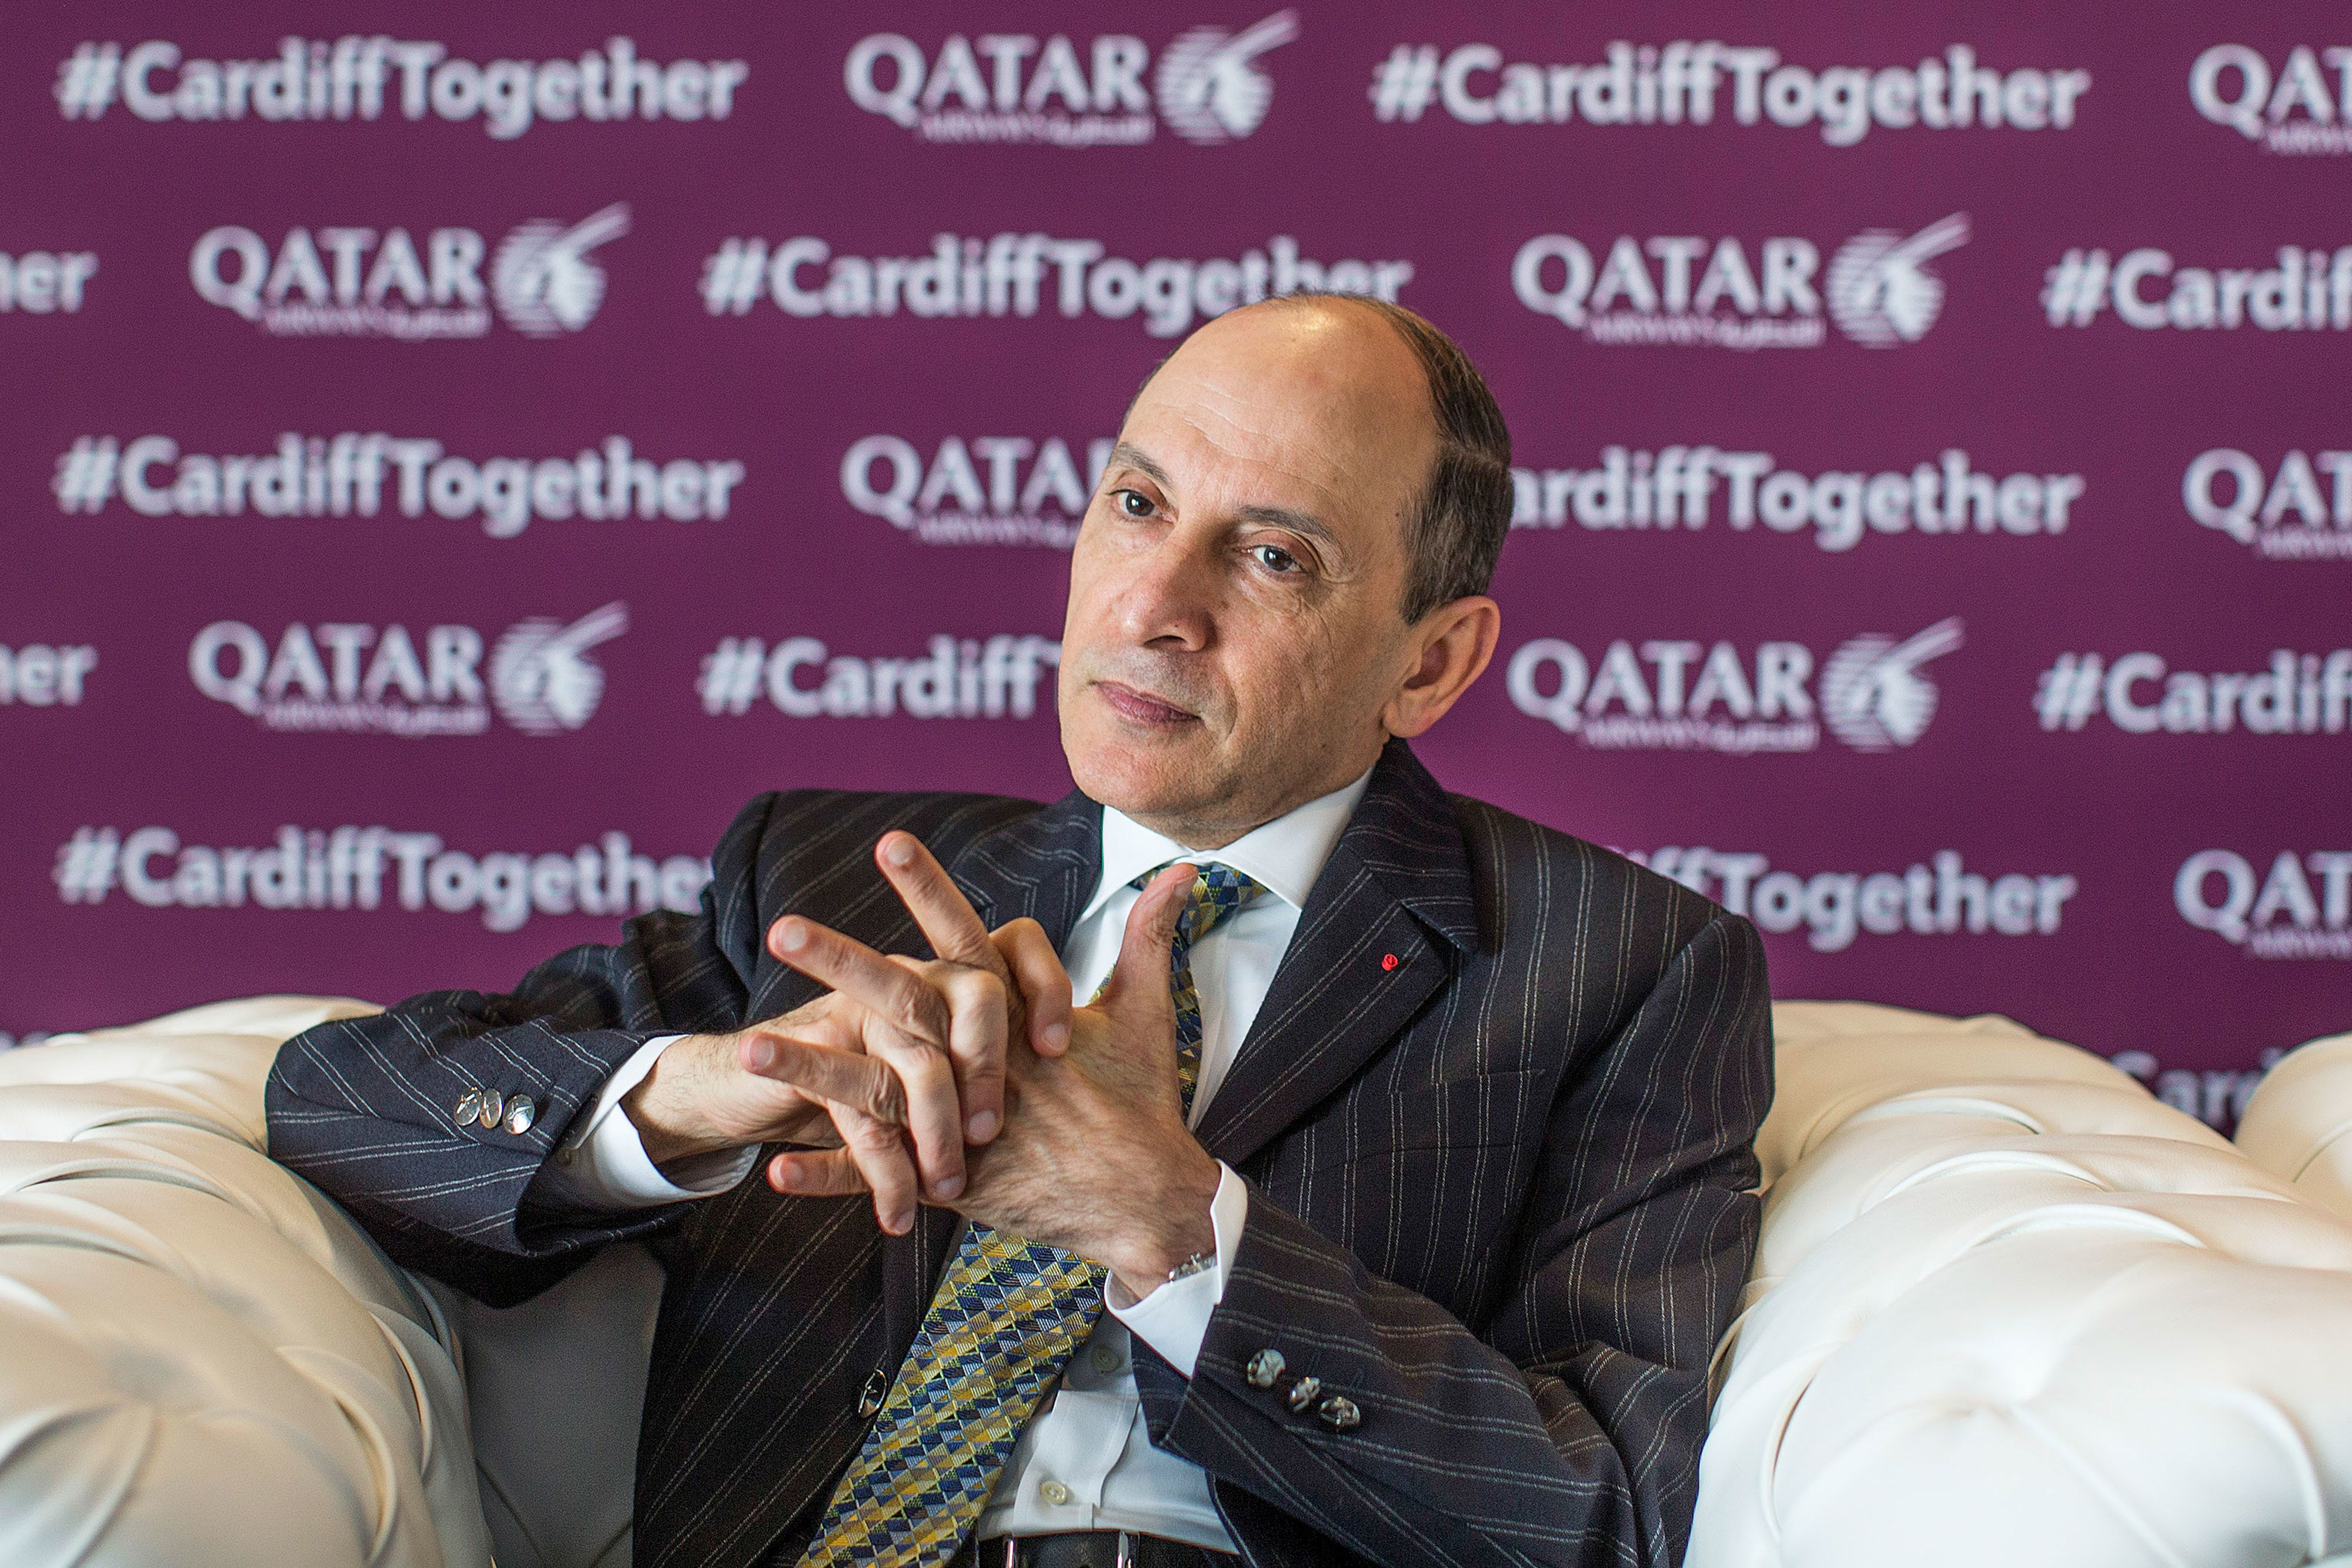 Qatar Airways CEO Akbar Al Baker speaks during an interview on May 2, 2018, in Cardiff,